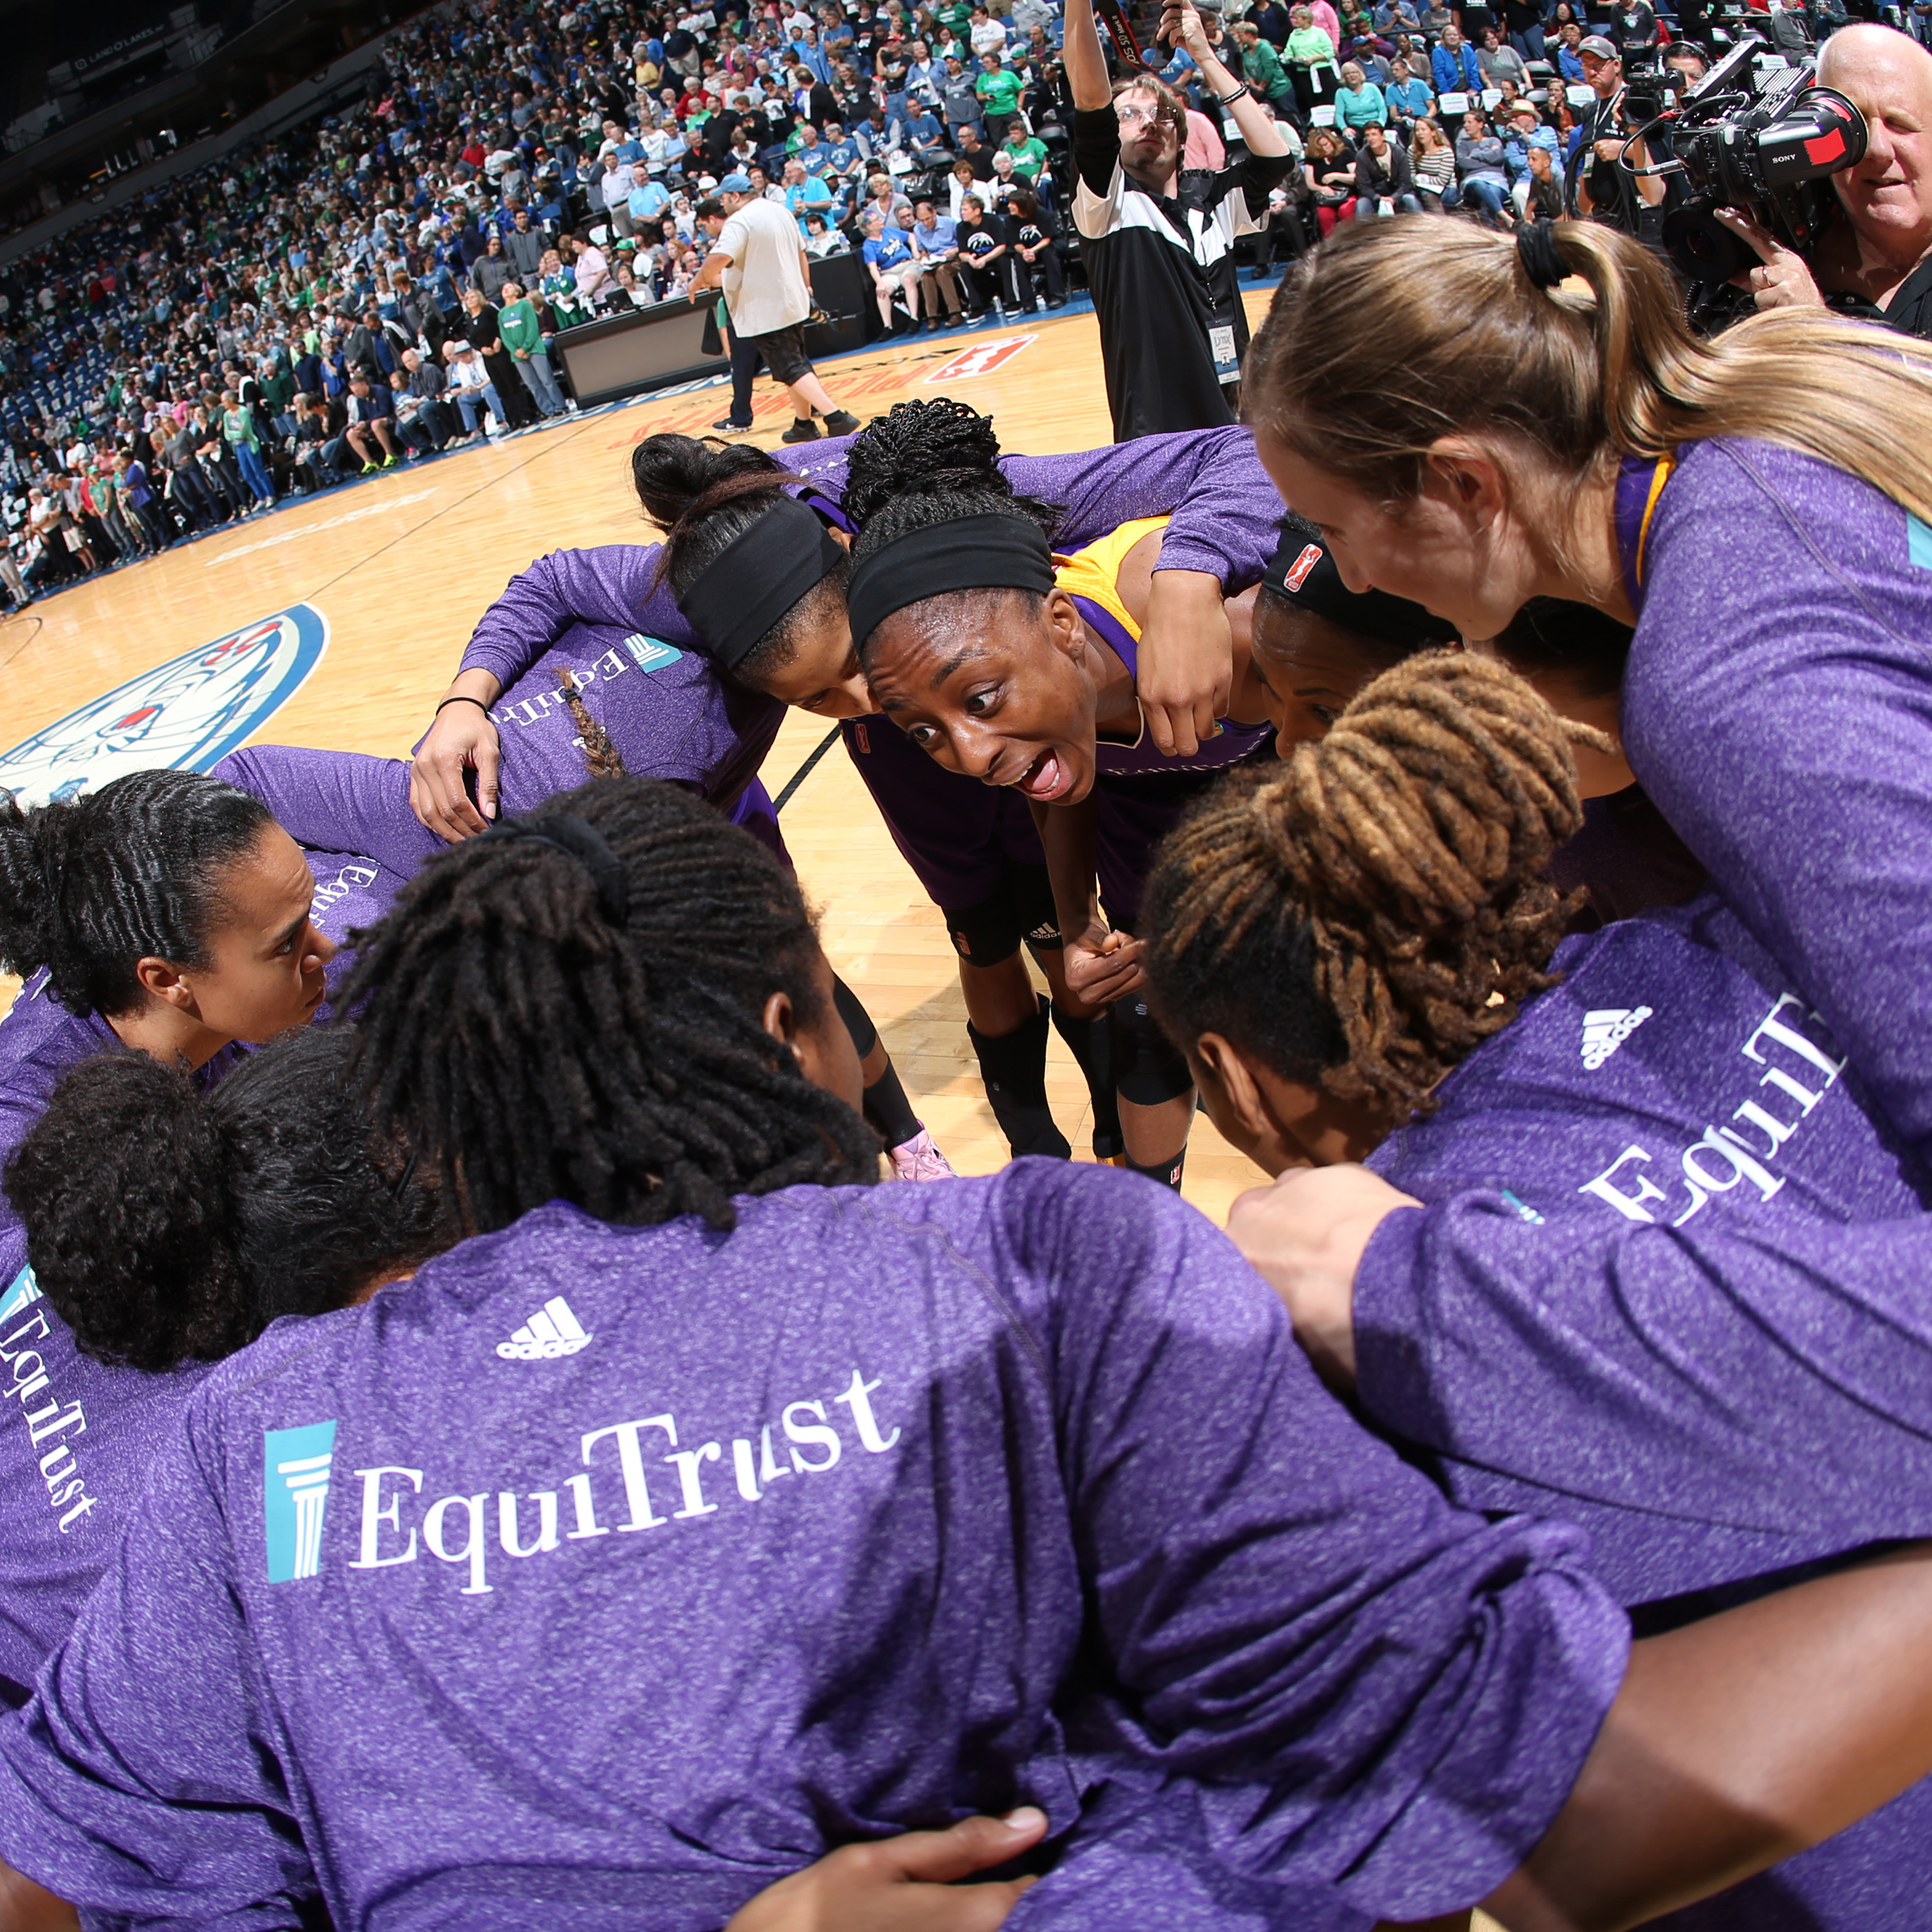 MINNEAPOLIS, MN - SEPTEMBER 18:  The Los Angeles Sparks huddle before the game against the Minnesota Lynx in Game 1 of the 2015 WNBA Western Conference Semifinal on September 18, 2015 at Target Center in Minneapolis, Minnesota.  NOTE TO USER: User expressly acknowledges and agrees that, by downloading and or using this Photograph, user is consenting to the terms and conditions of the Getty Images License Agreement. Mandatory Copyright Notice: Copyright 2015 NBAE (Photo by David Sherman/NBAE via Getty Images)